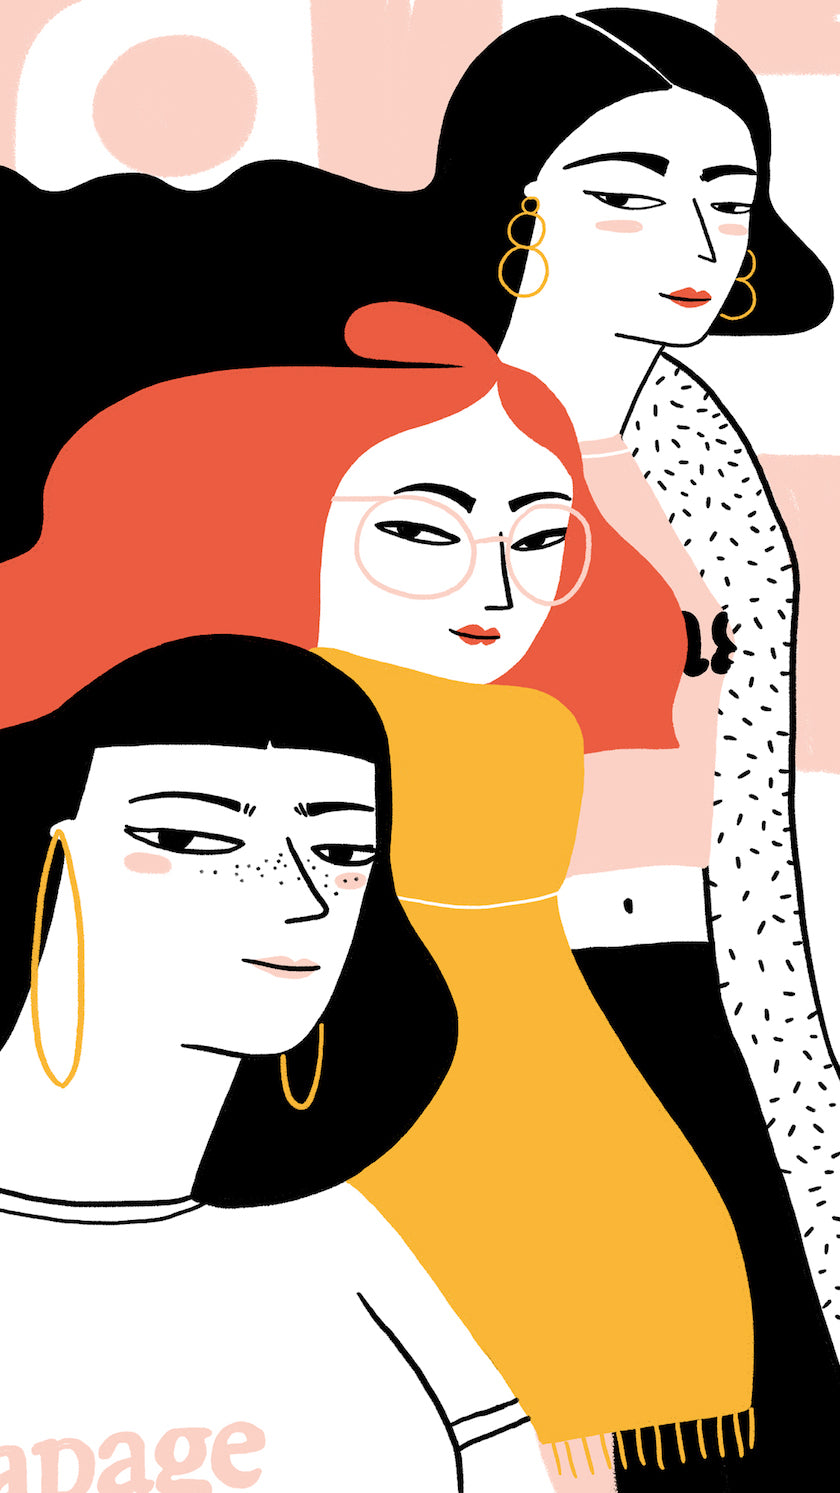 Illustration work from Elda Broglio, a community member of LWD Berlin